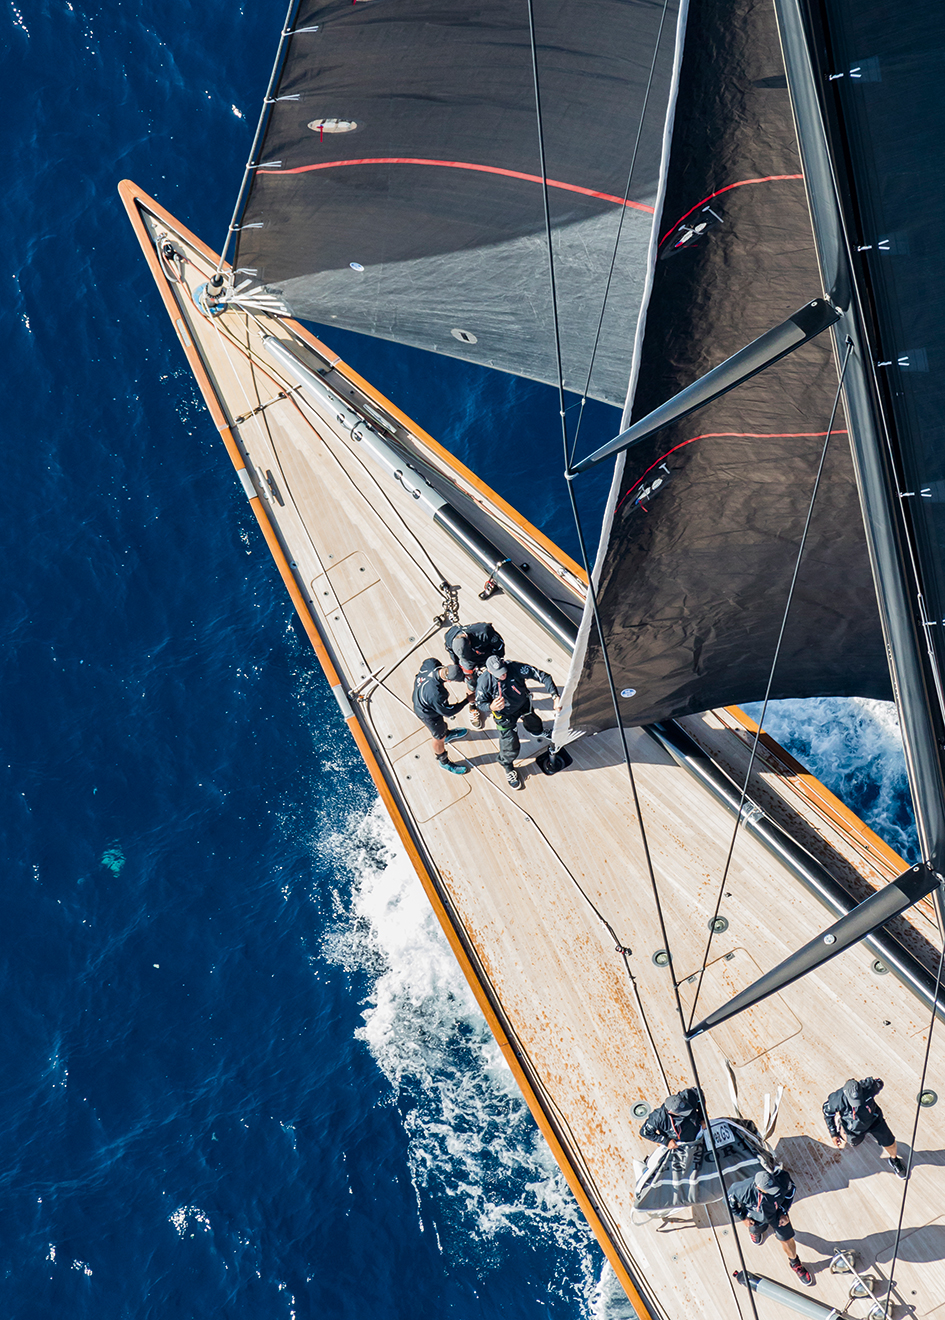 the-foredeck-of-the-j-class-sailing-yacht-svea-credit-carlo-borlenghi